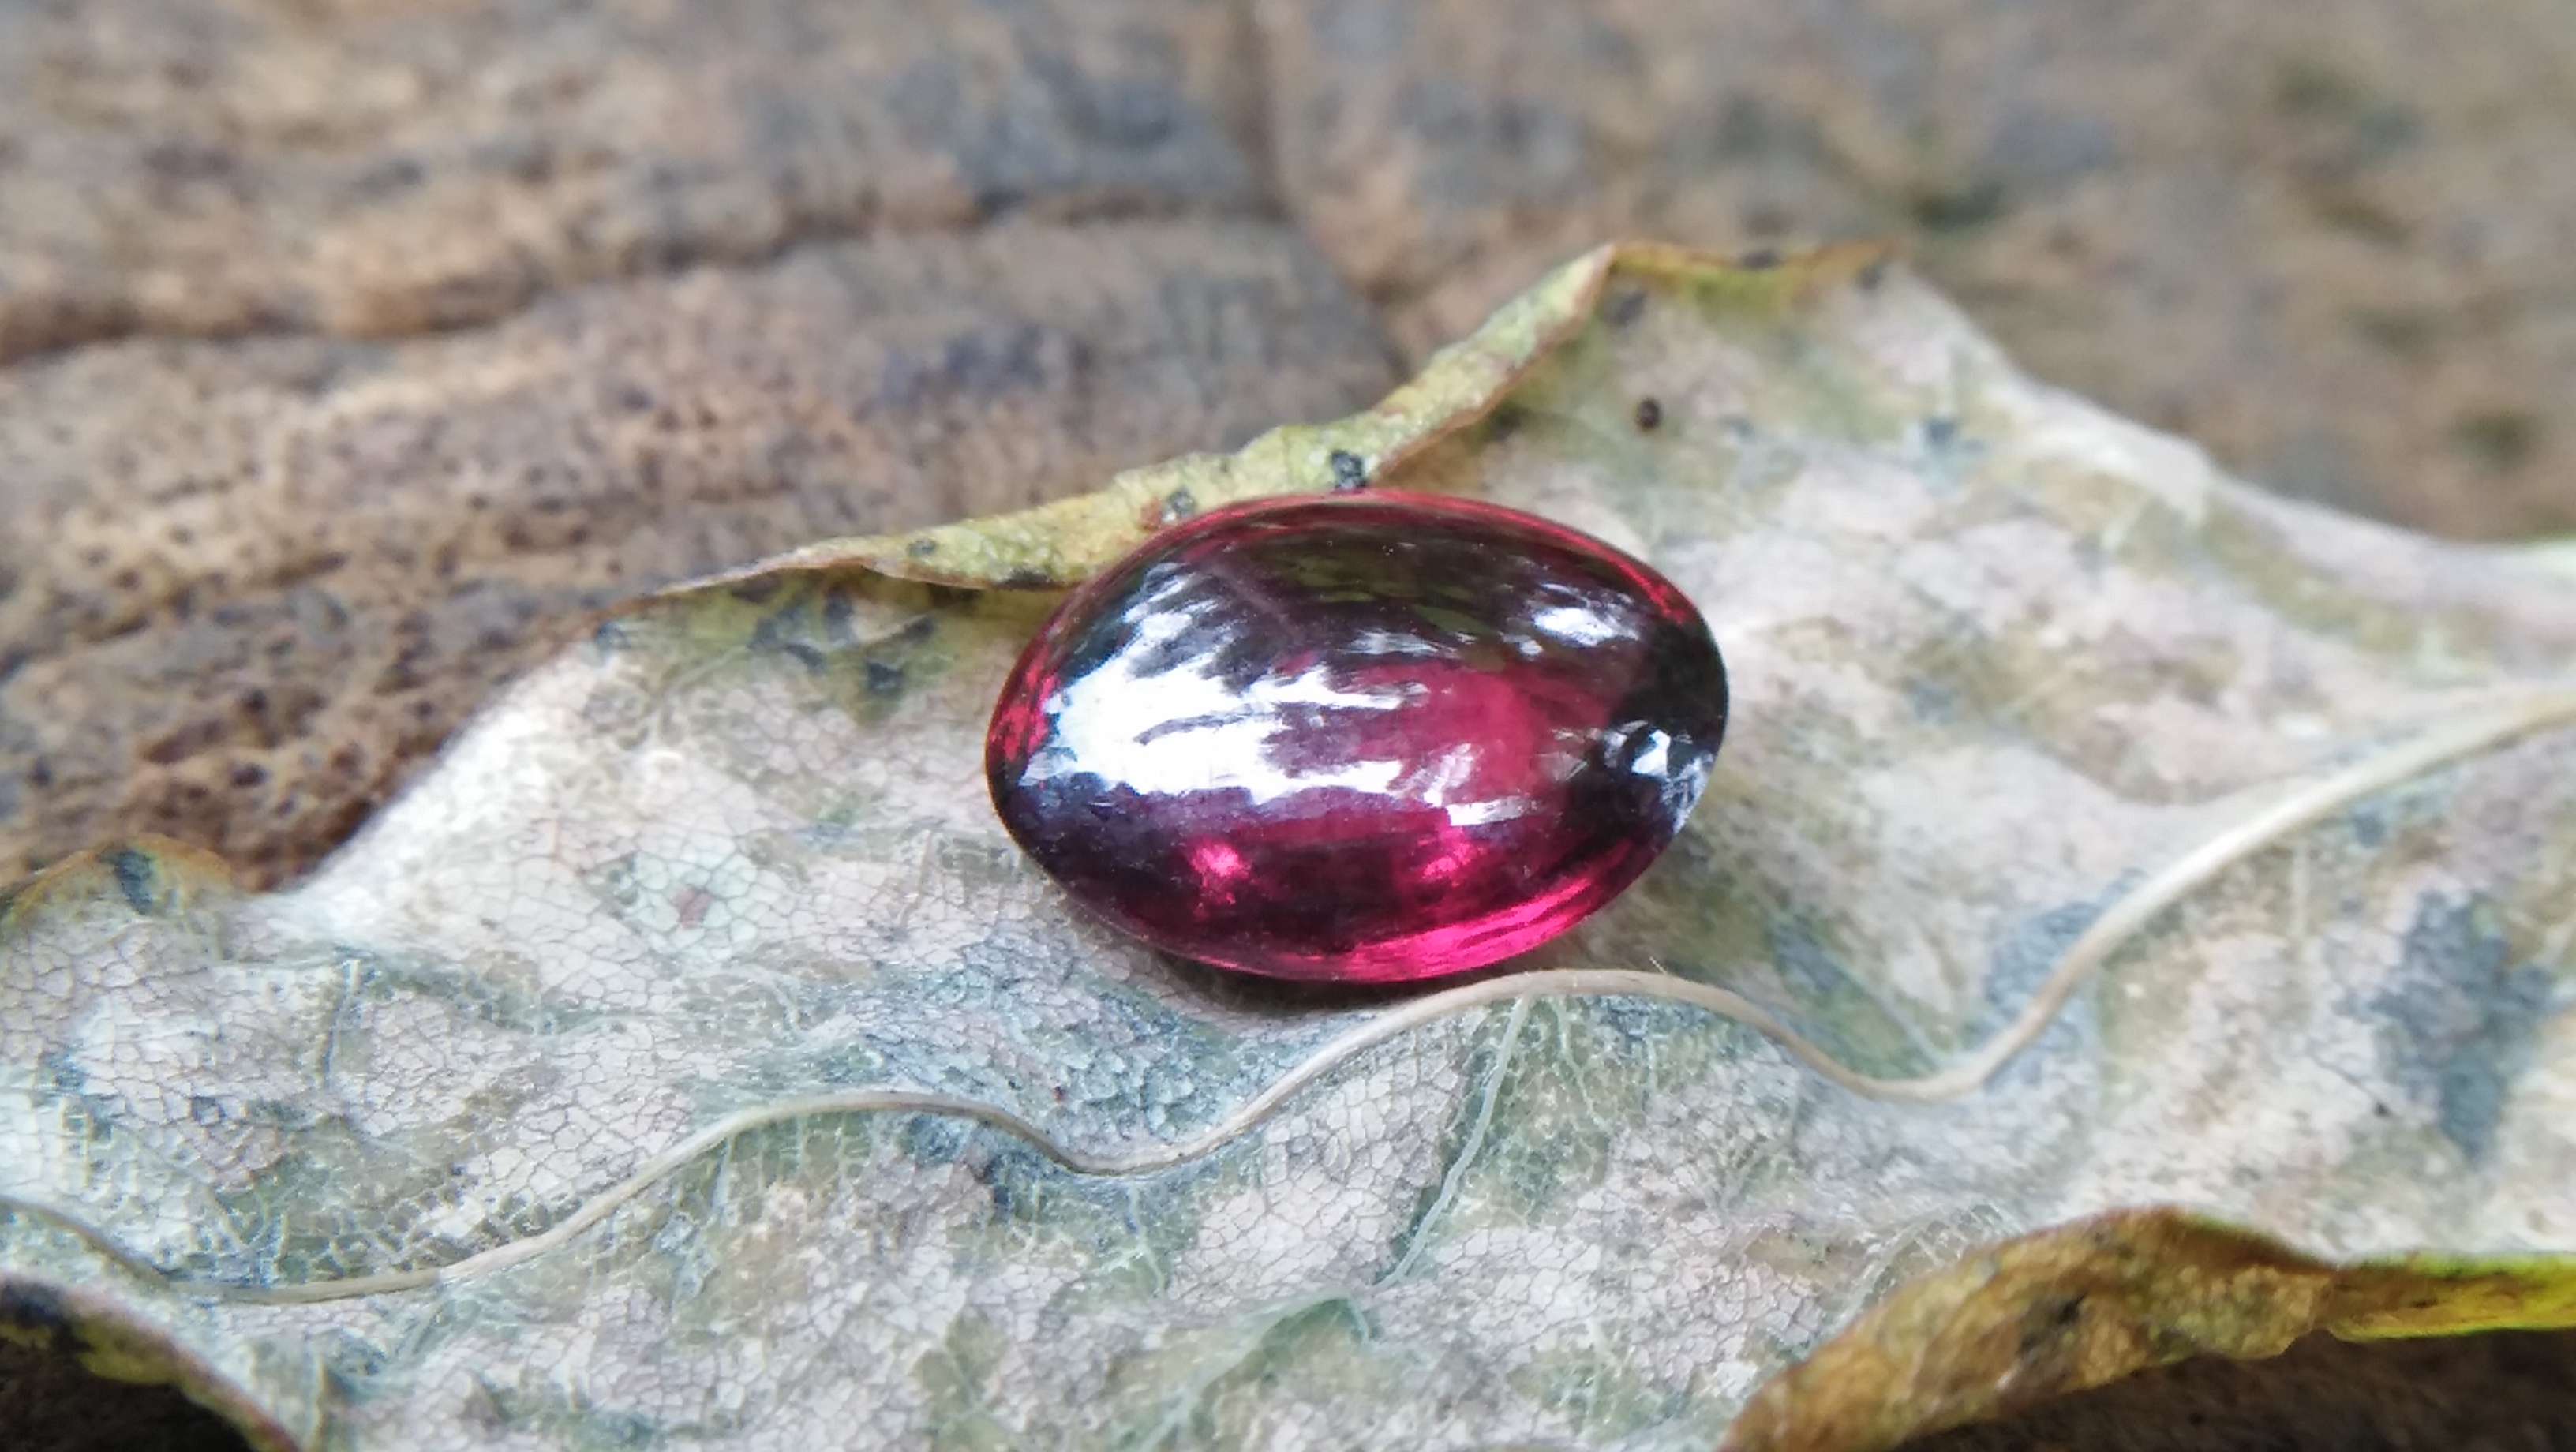 Ceylon Natural Rhodolite Garnet Cabochon Eye 👀 Weight: 2.05Cts Dimension: 9.1mm x 6.9mm x 3.5mm Mineral: Ratapura, Sri Lanka Clarity: Very Clean Colour: Pinkish Red Birthstone: June birthstone Rhodolite is a varietal name for rose-pink to red mineral pyrope, a species in the garnet group Mohs scale hardness: 7–7.5 Refractive index: 1.760